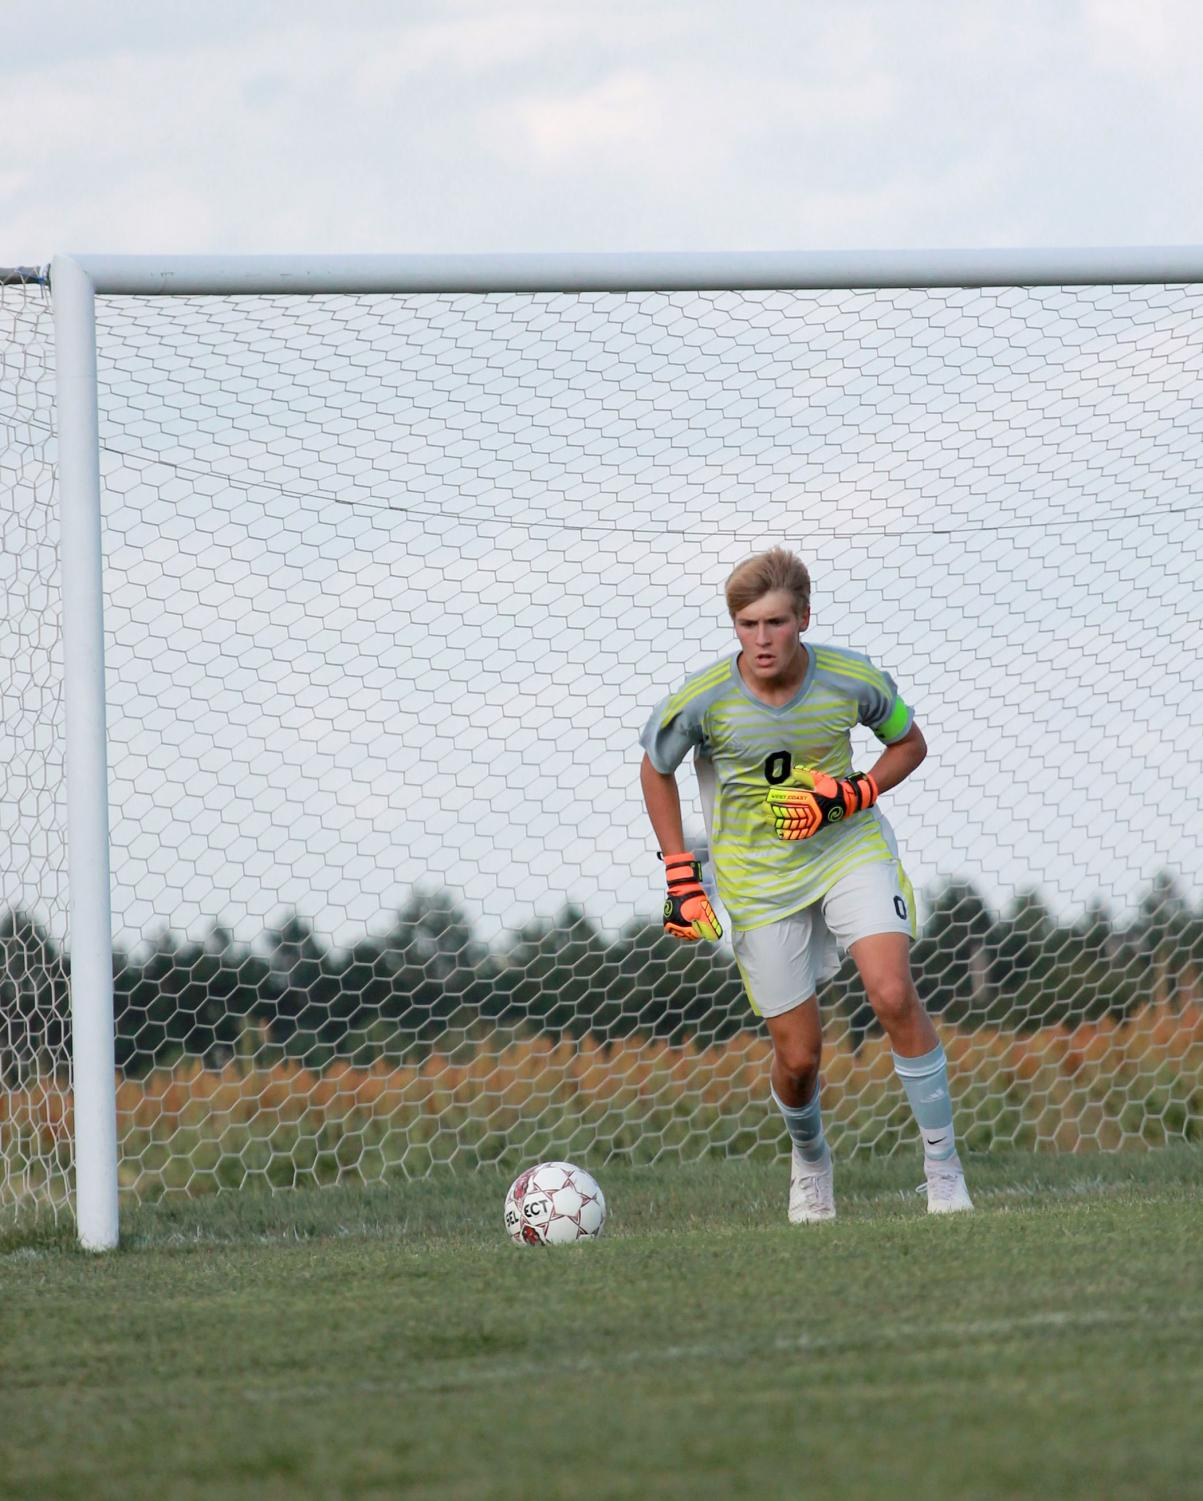 Senior Connor Teget runs up for a goal kick in in the minutes leading up to a lightning delay. The game resulted in a 2-1 loss for the Indians .